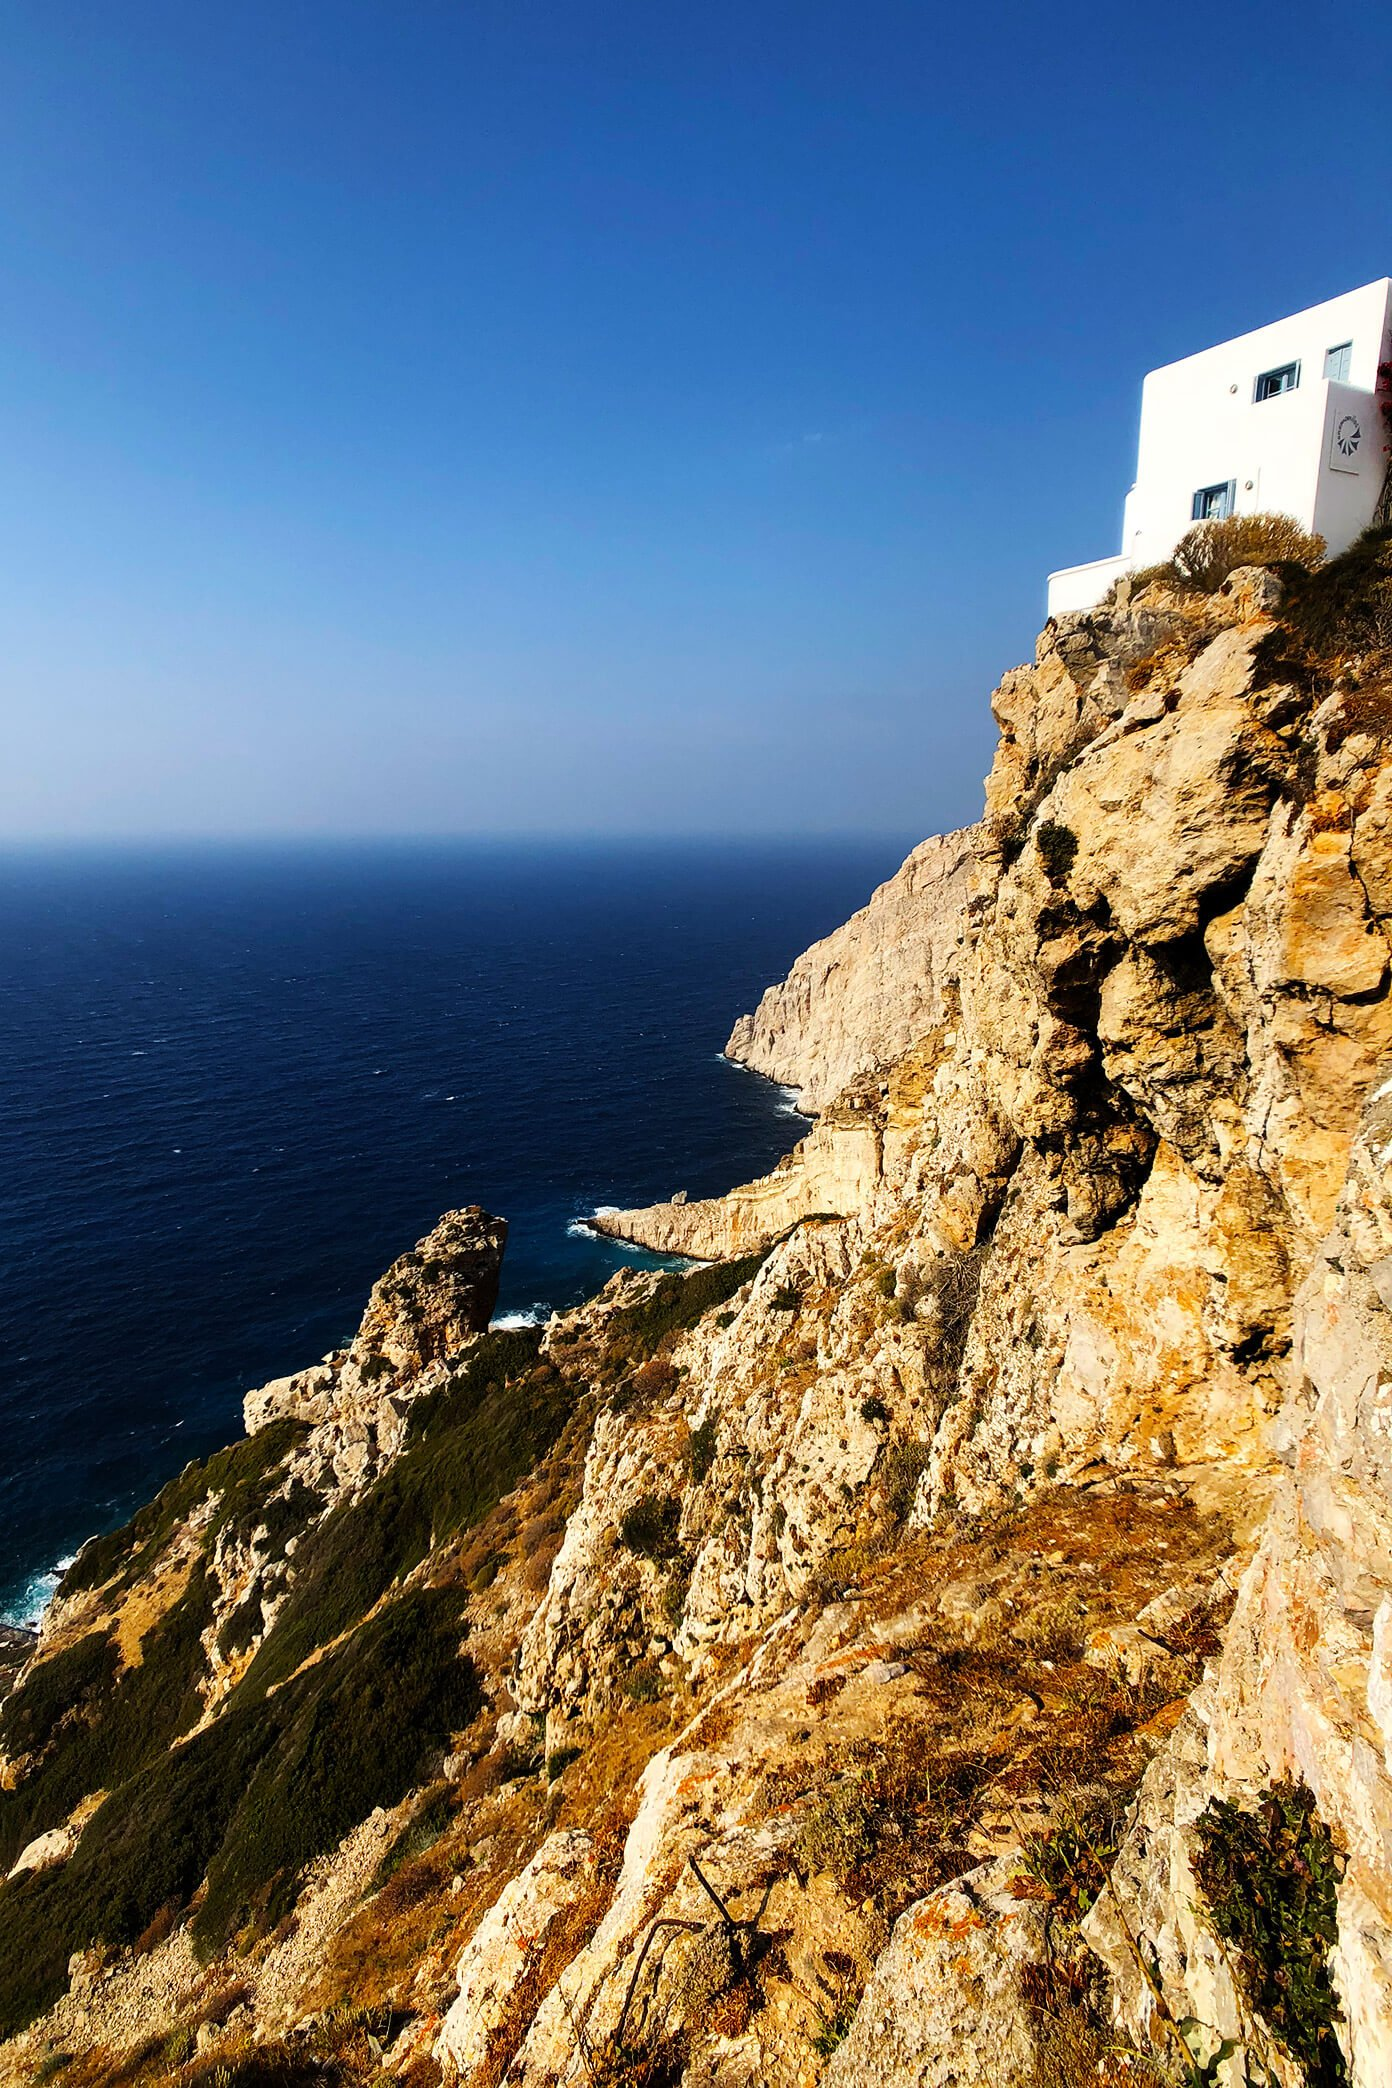 Cliffs in Folegandros, Greece